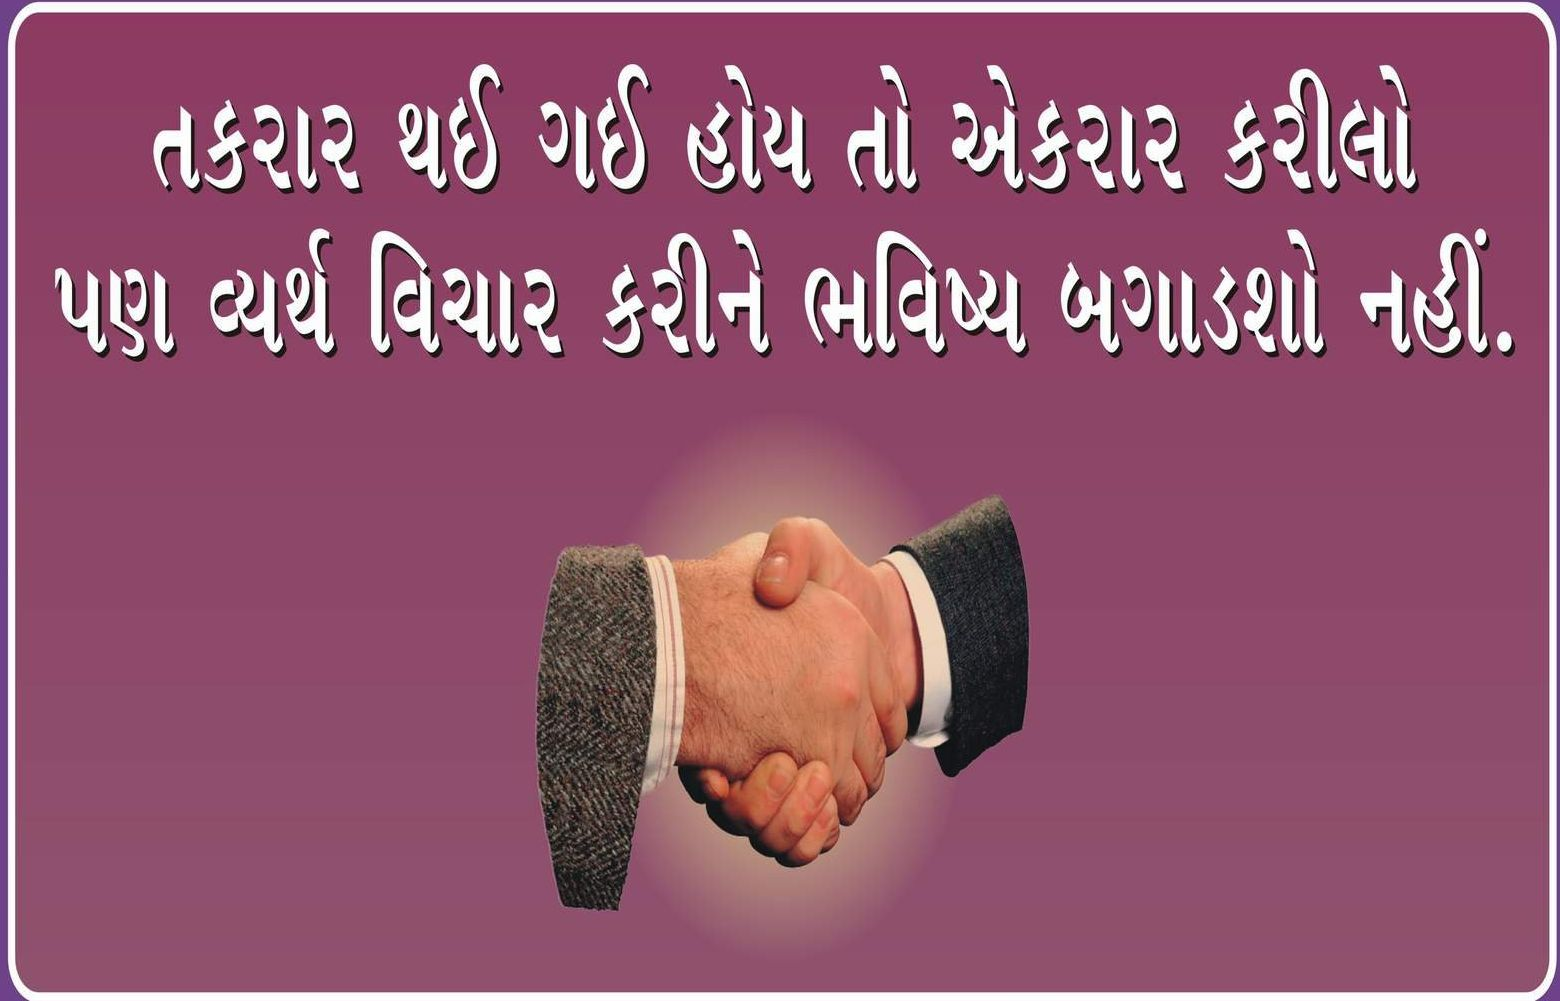 Funny Quotes On Love In Gujarati : Motivational Quotes In Gujarati. QuotesGram